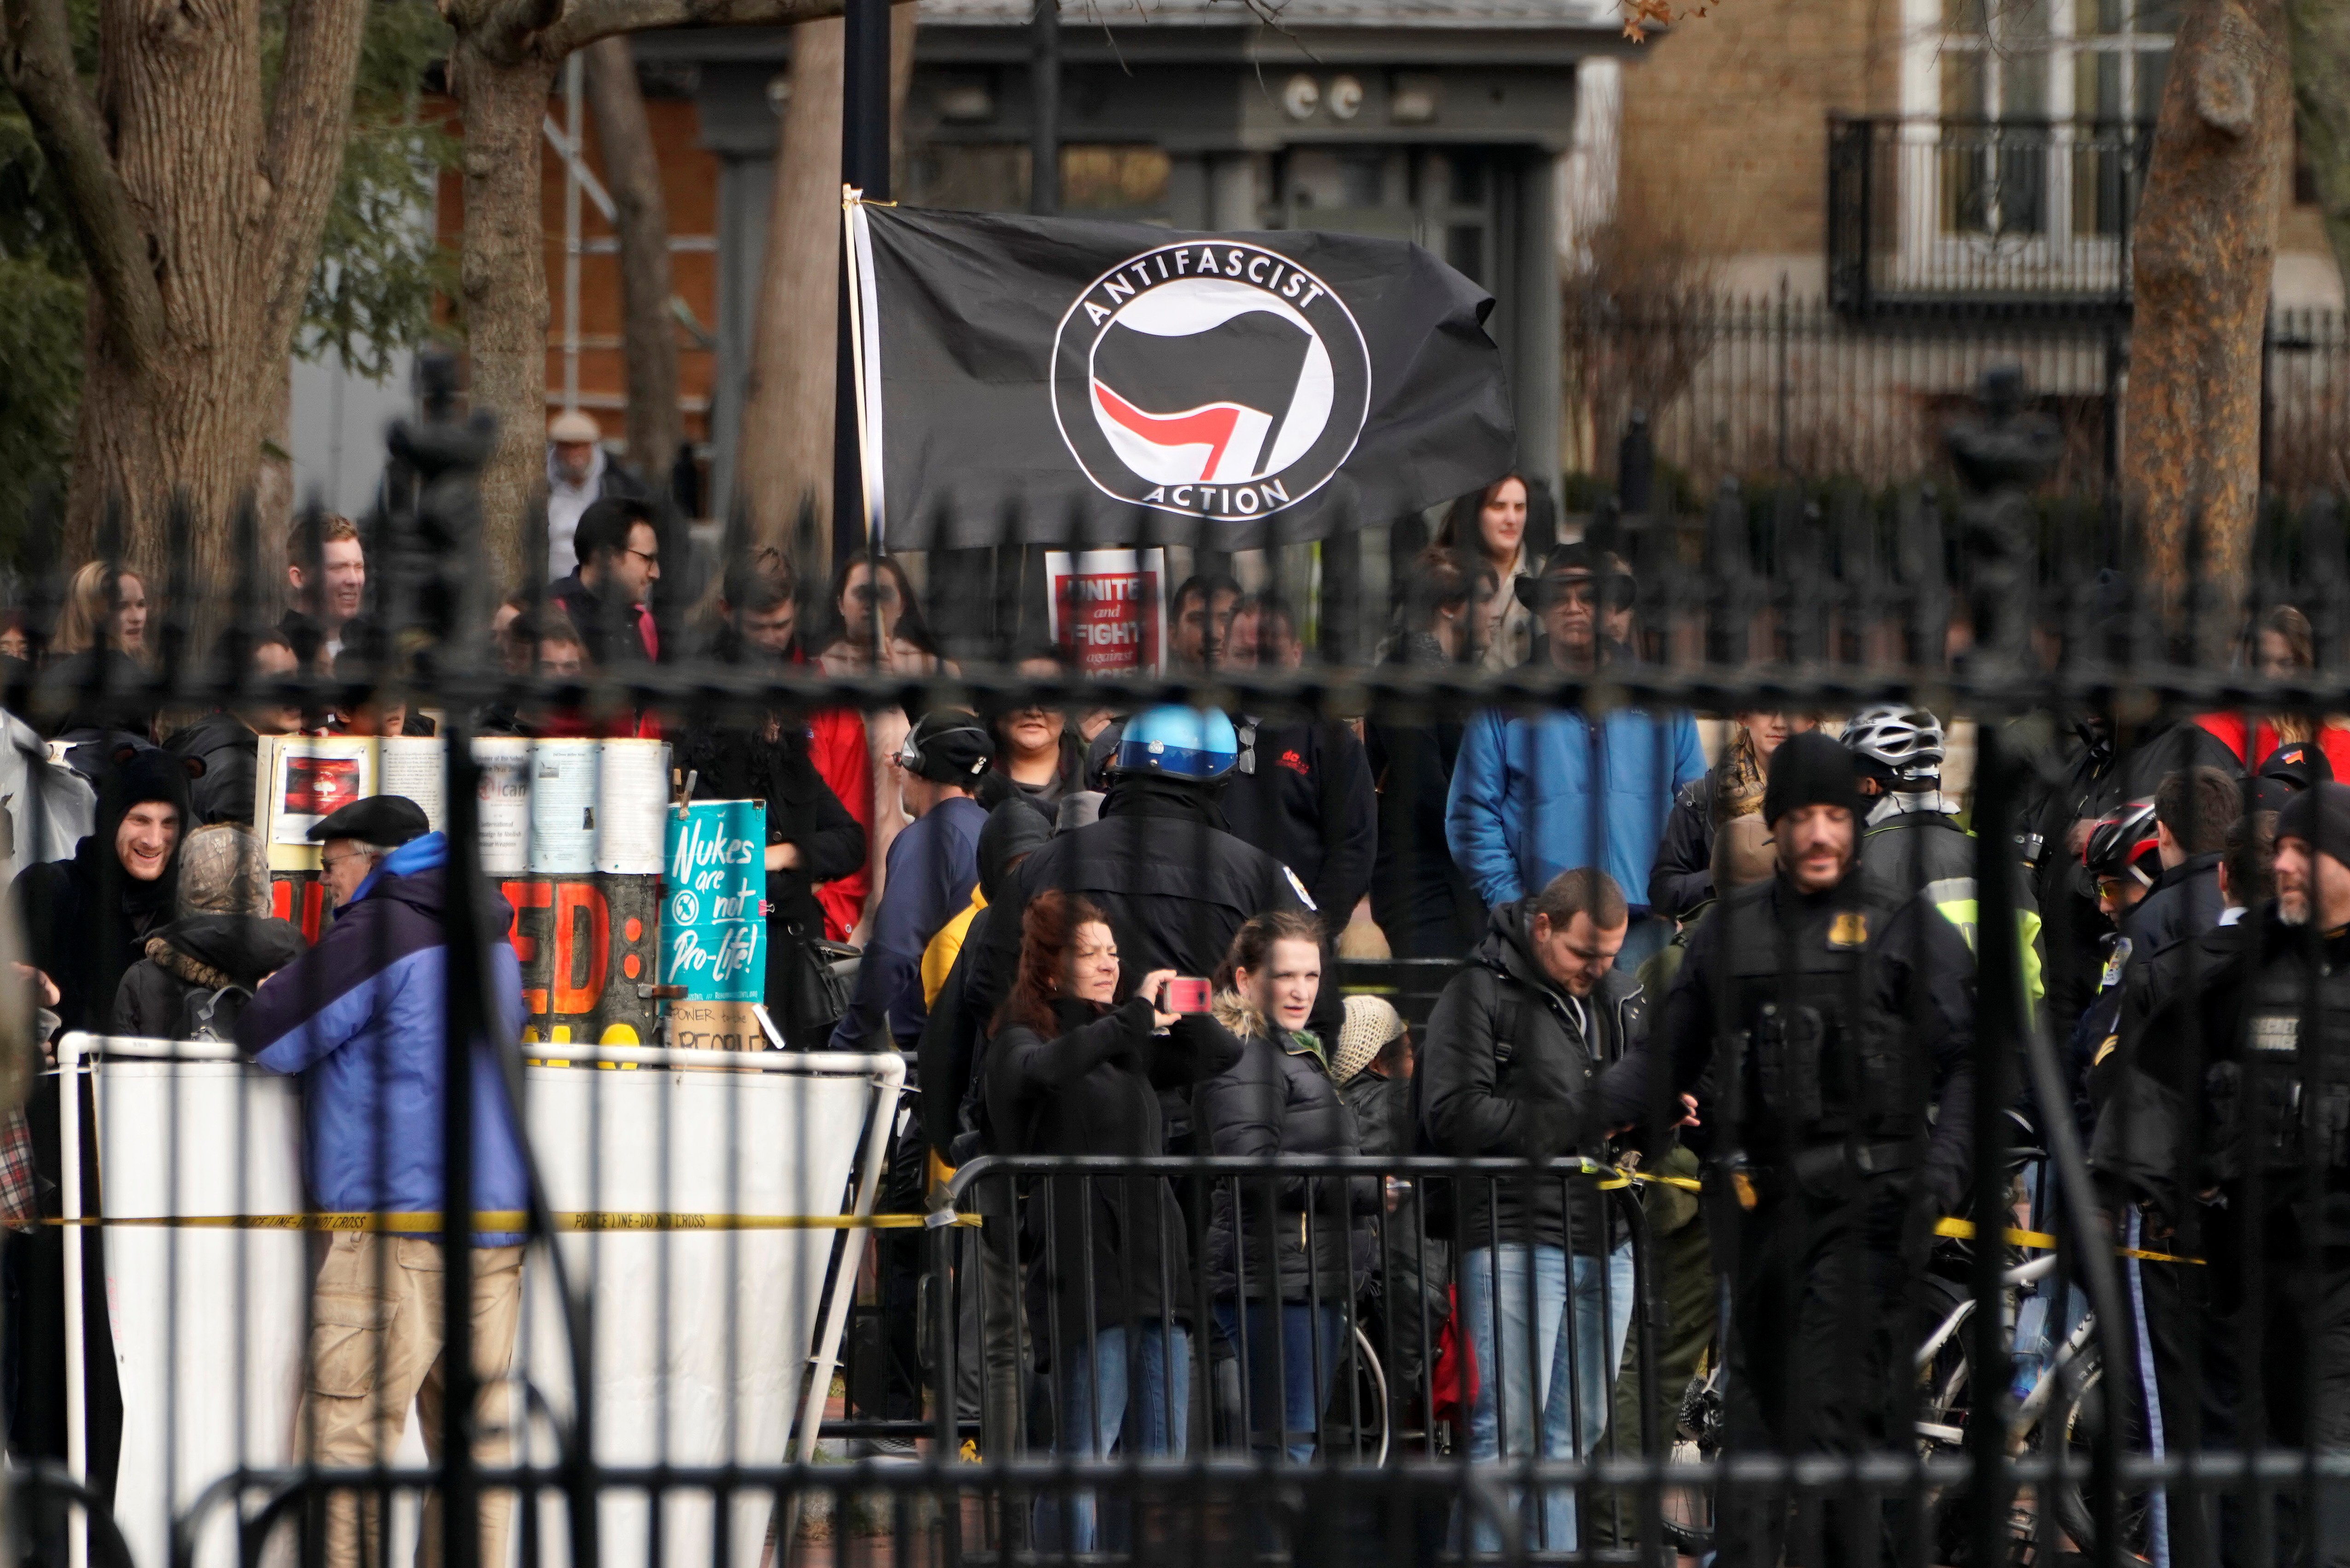 The group Antifacist Action holds a rally outside of the White House in Washington, U.S., January 5, 2019. REUTERS/Joshua Roberts - RC137C4AA390